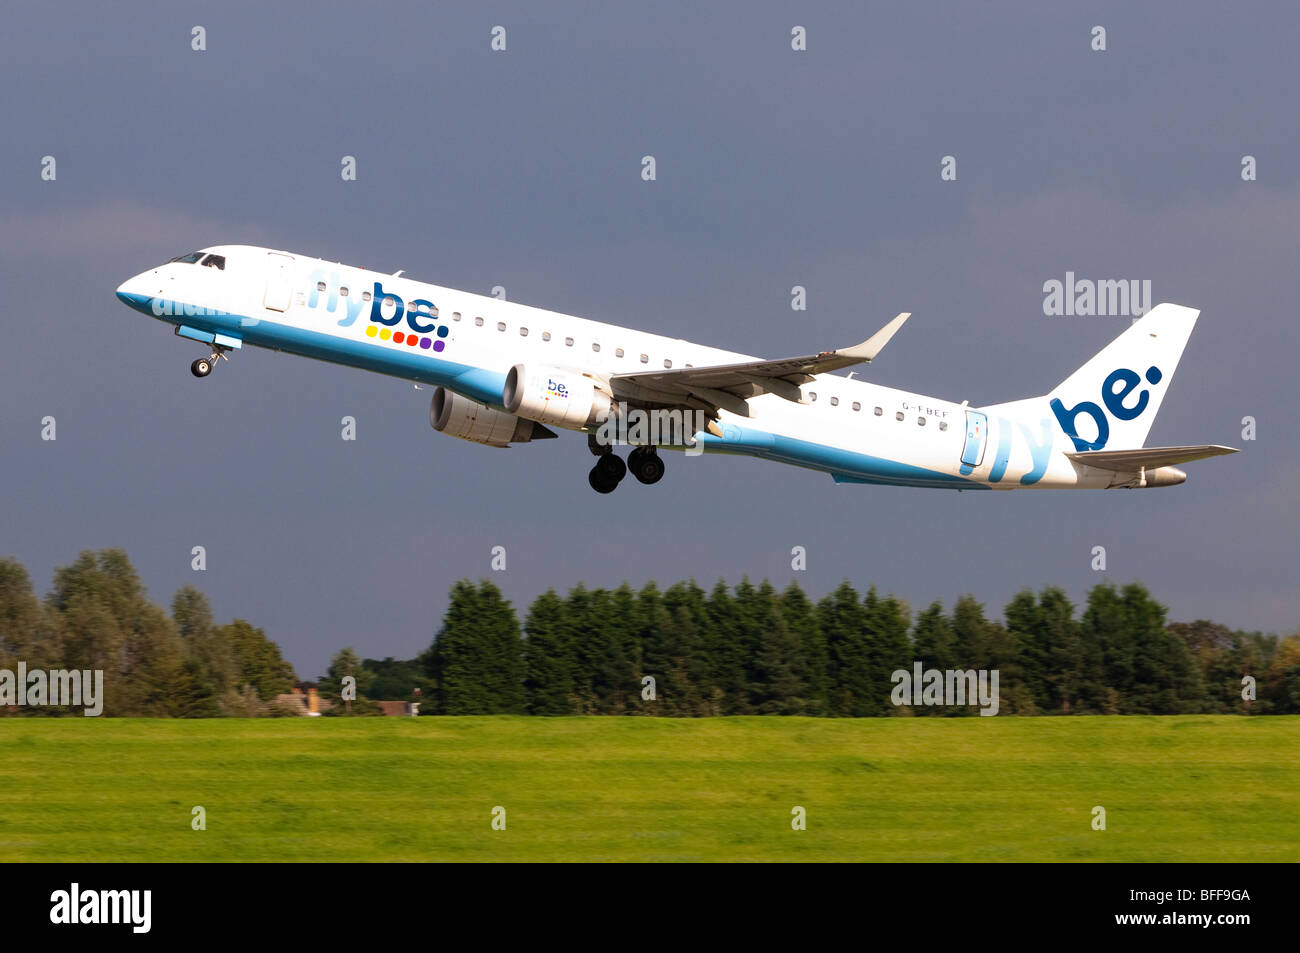 Embraer ERJ-190 operated by Flybe taking off at Birmingham Airport - Stock Image